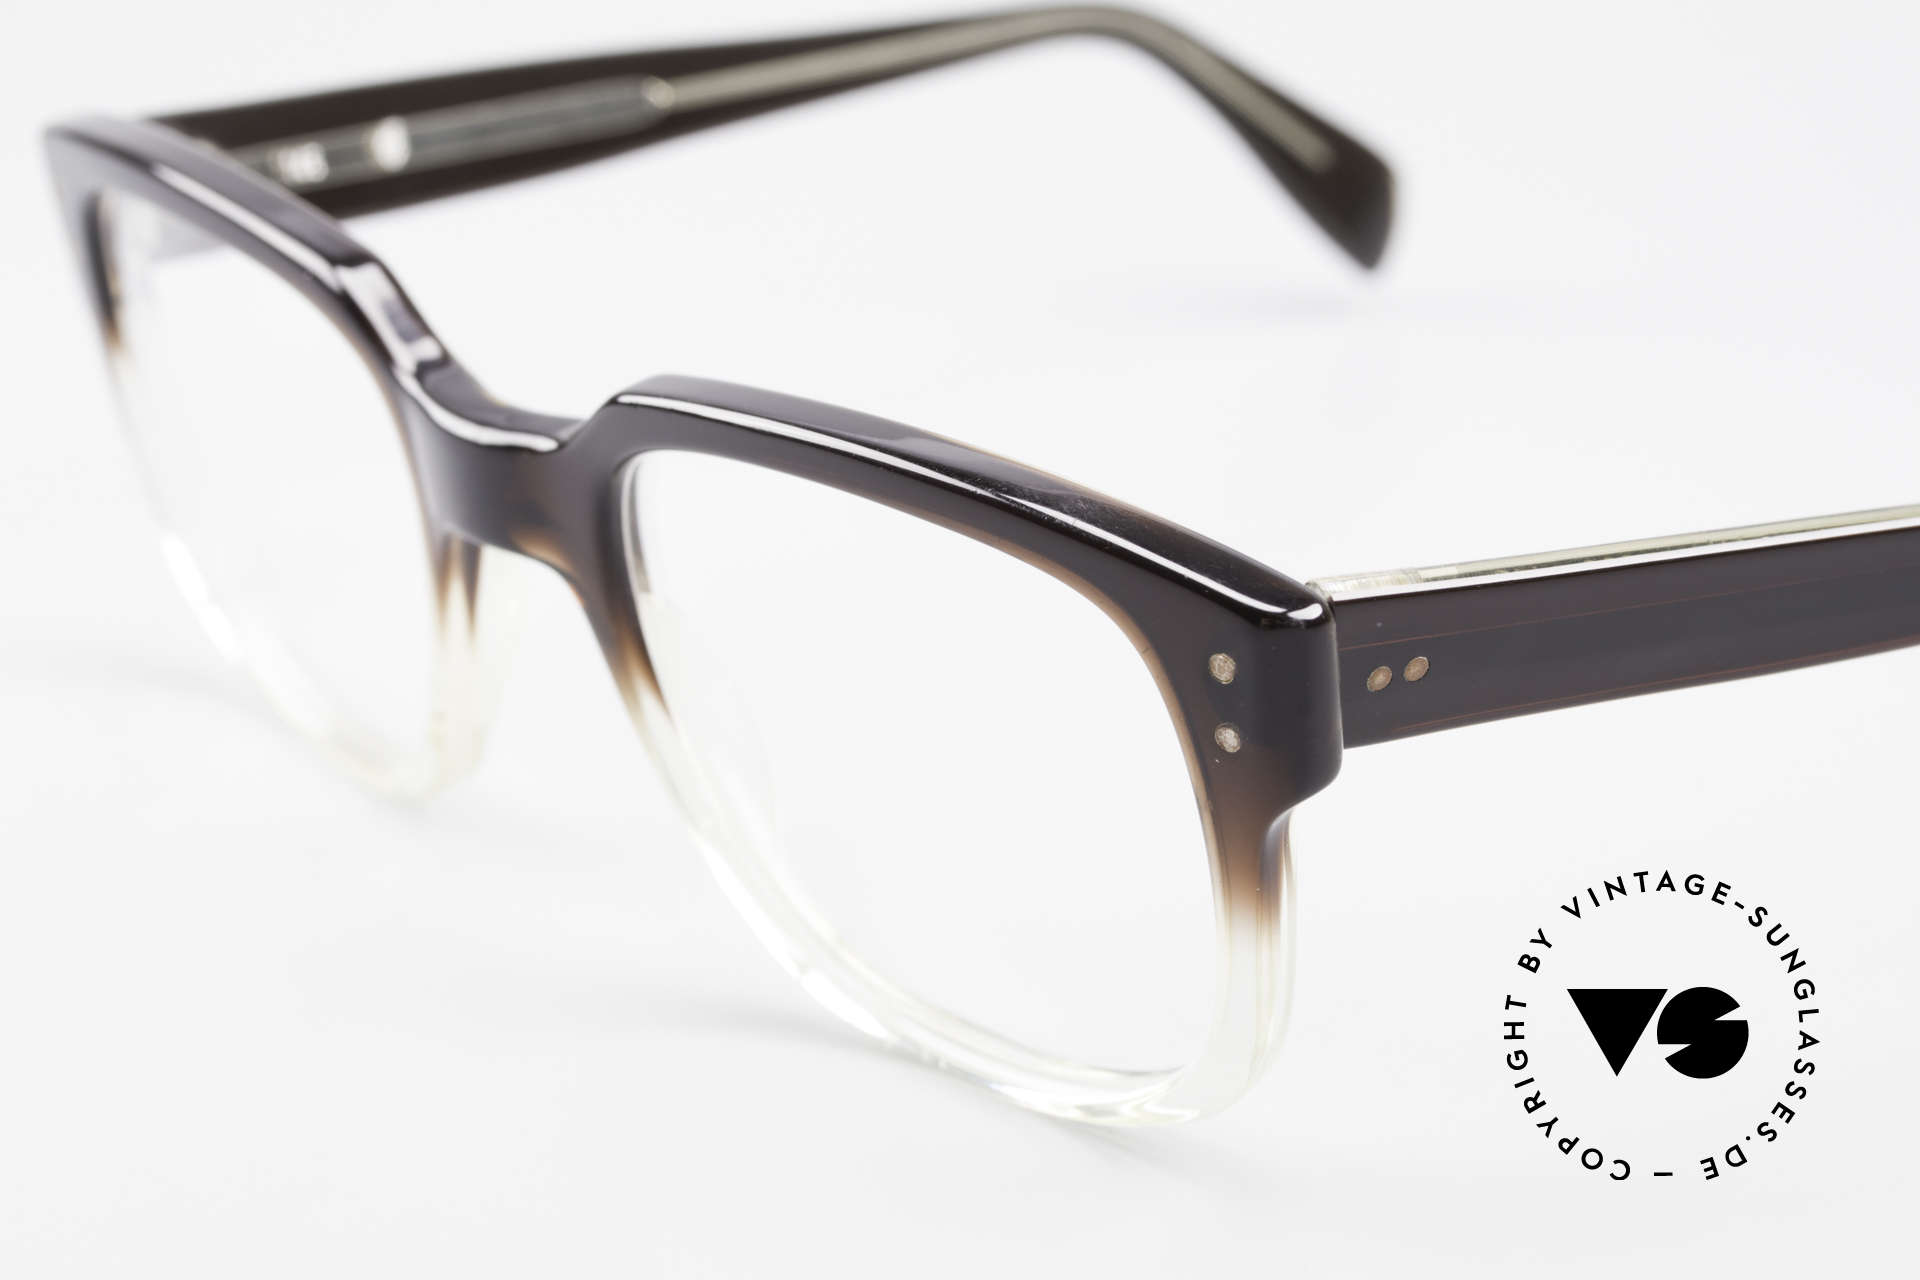 Metzler 447 Vintage Glasses Nerd Hipster, 2nd hand model, but in mint condition - truly vintage!, Made for Men